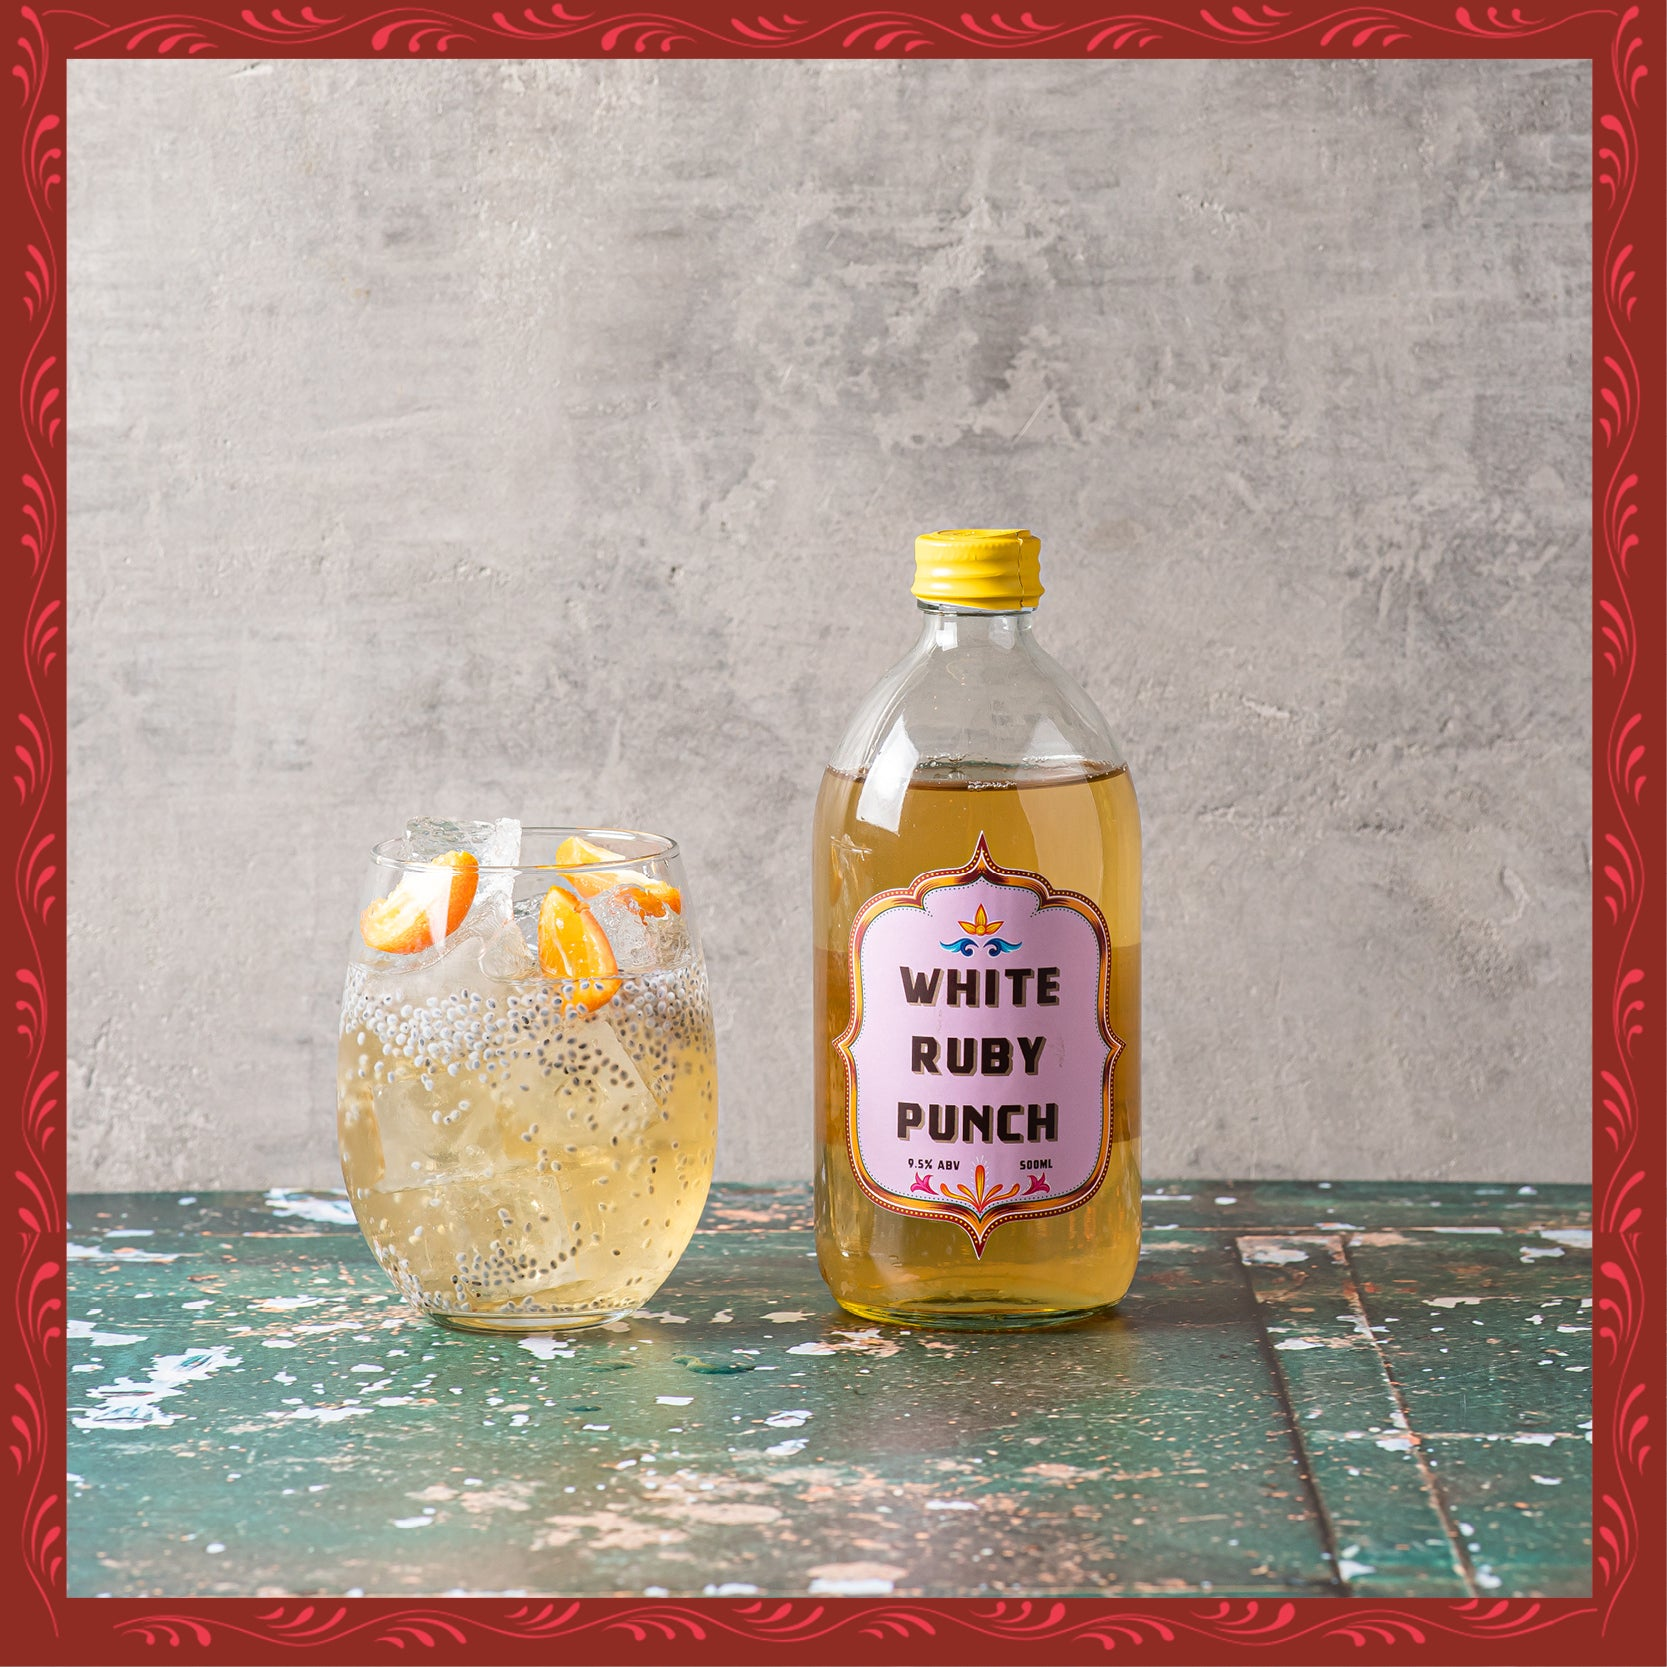 WHITE RUBY PUNCH (500ml)